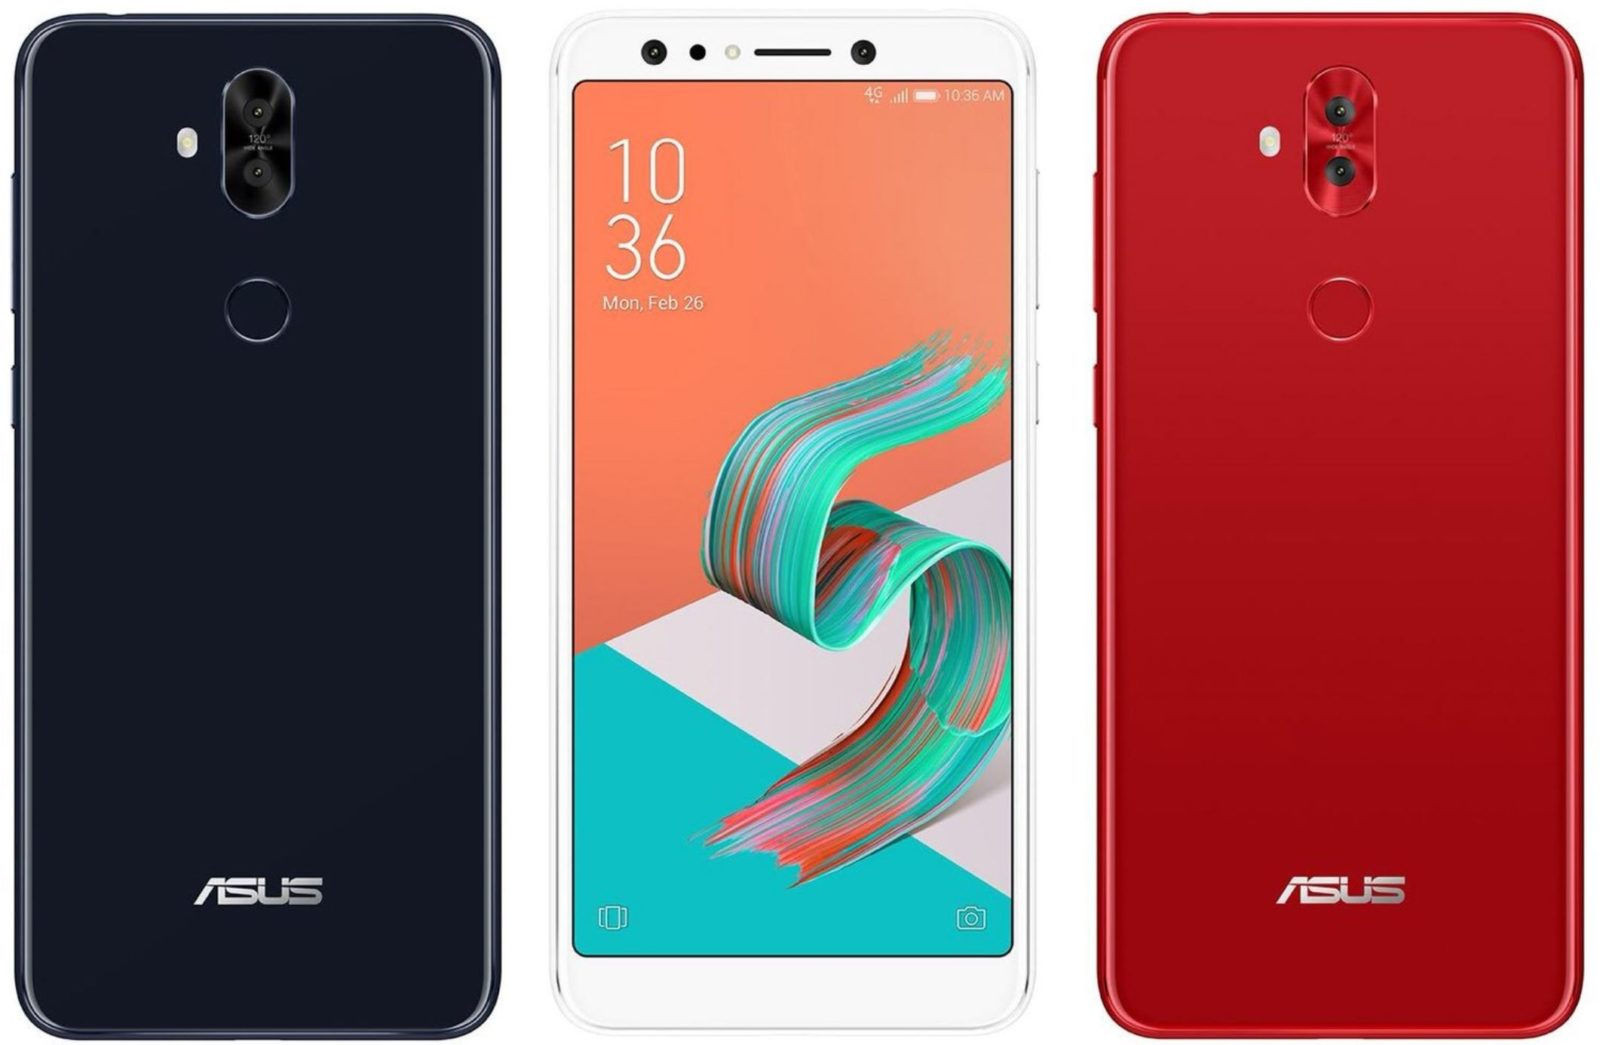 asus zenfone 5 lite rumoured to launch at mwc 2018 onetechstop. Black Bedroom Furniture Sets. Home Design Ideas